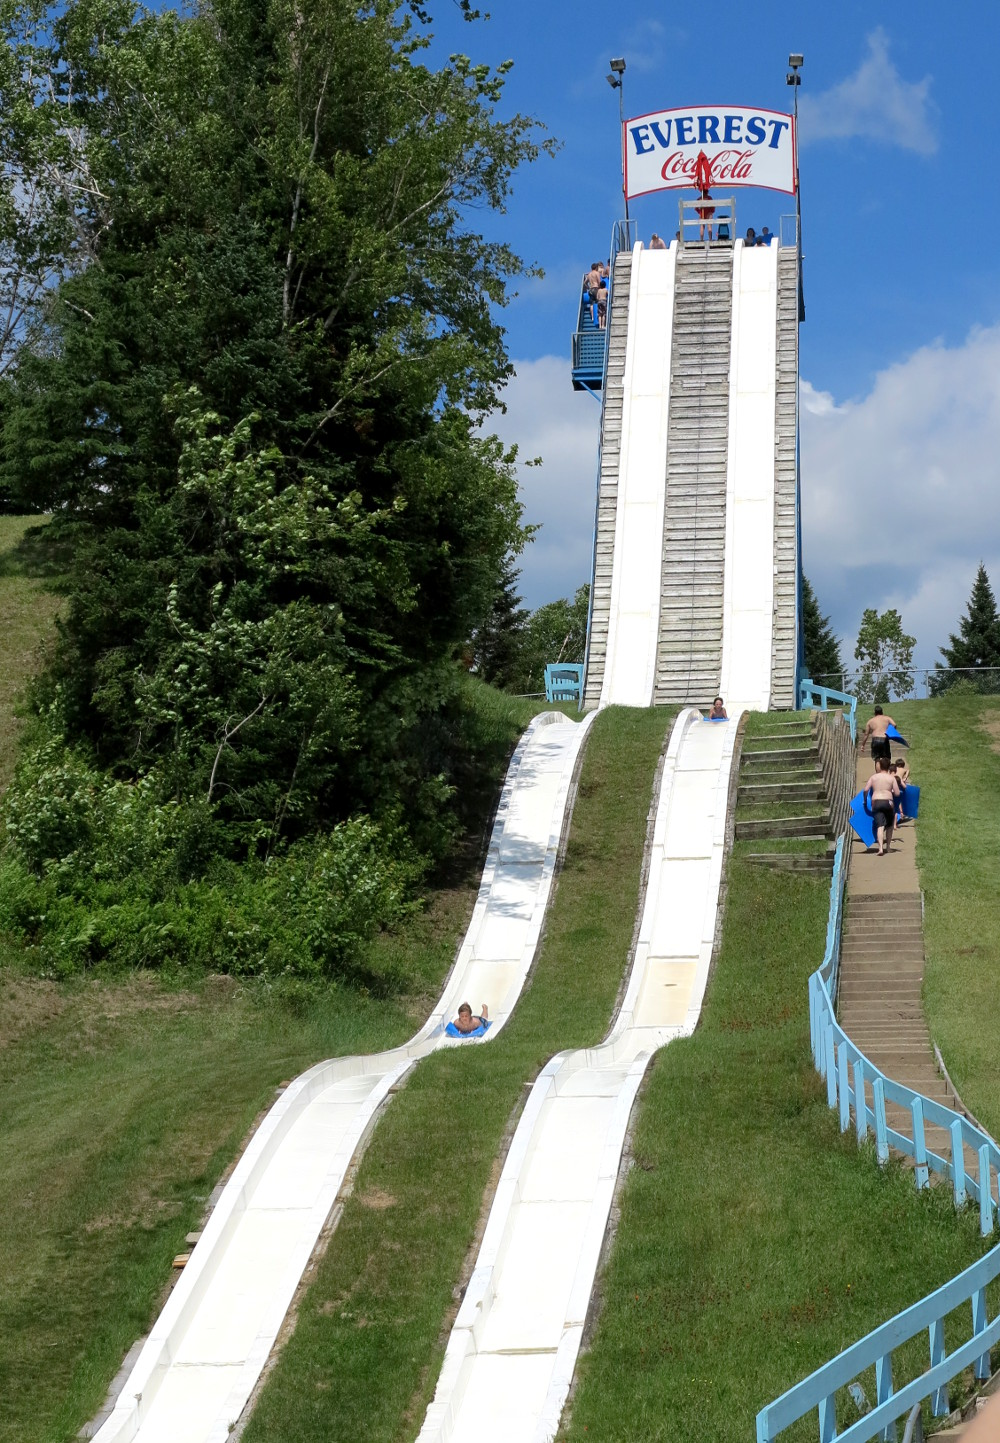 Everest at Village Vacances Valcartier Double-Barrelled Travel